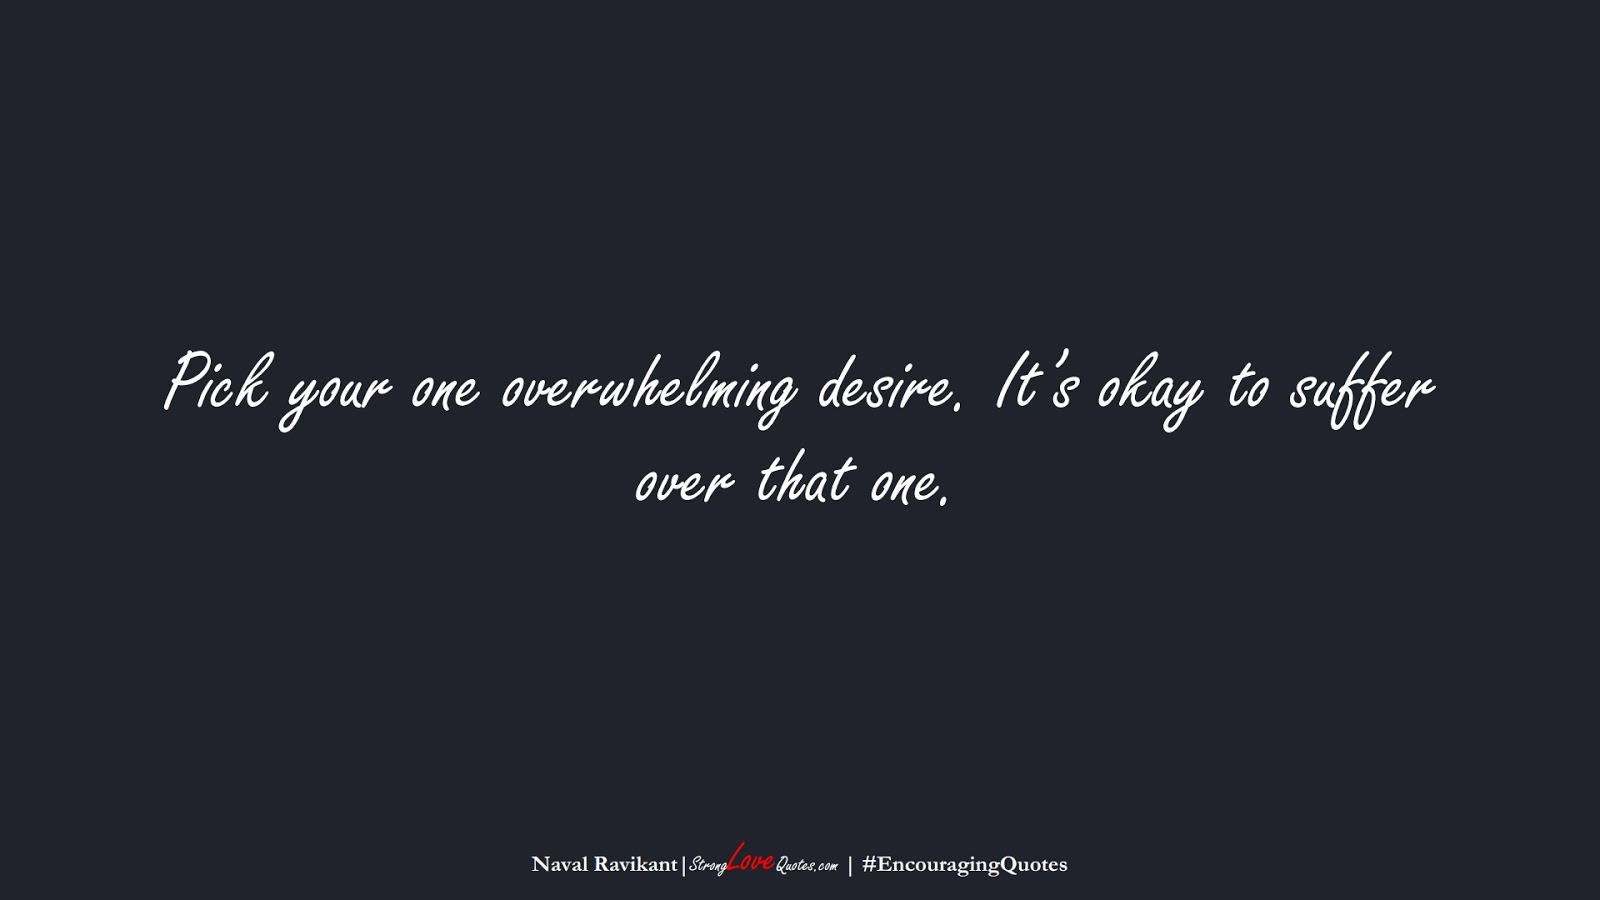 Pick your one overwhelming desire. It's okay to suffer over that one. (Naval Ravikant);  #EncouragingQuotes